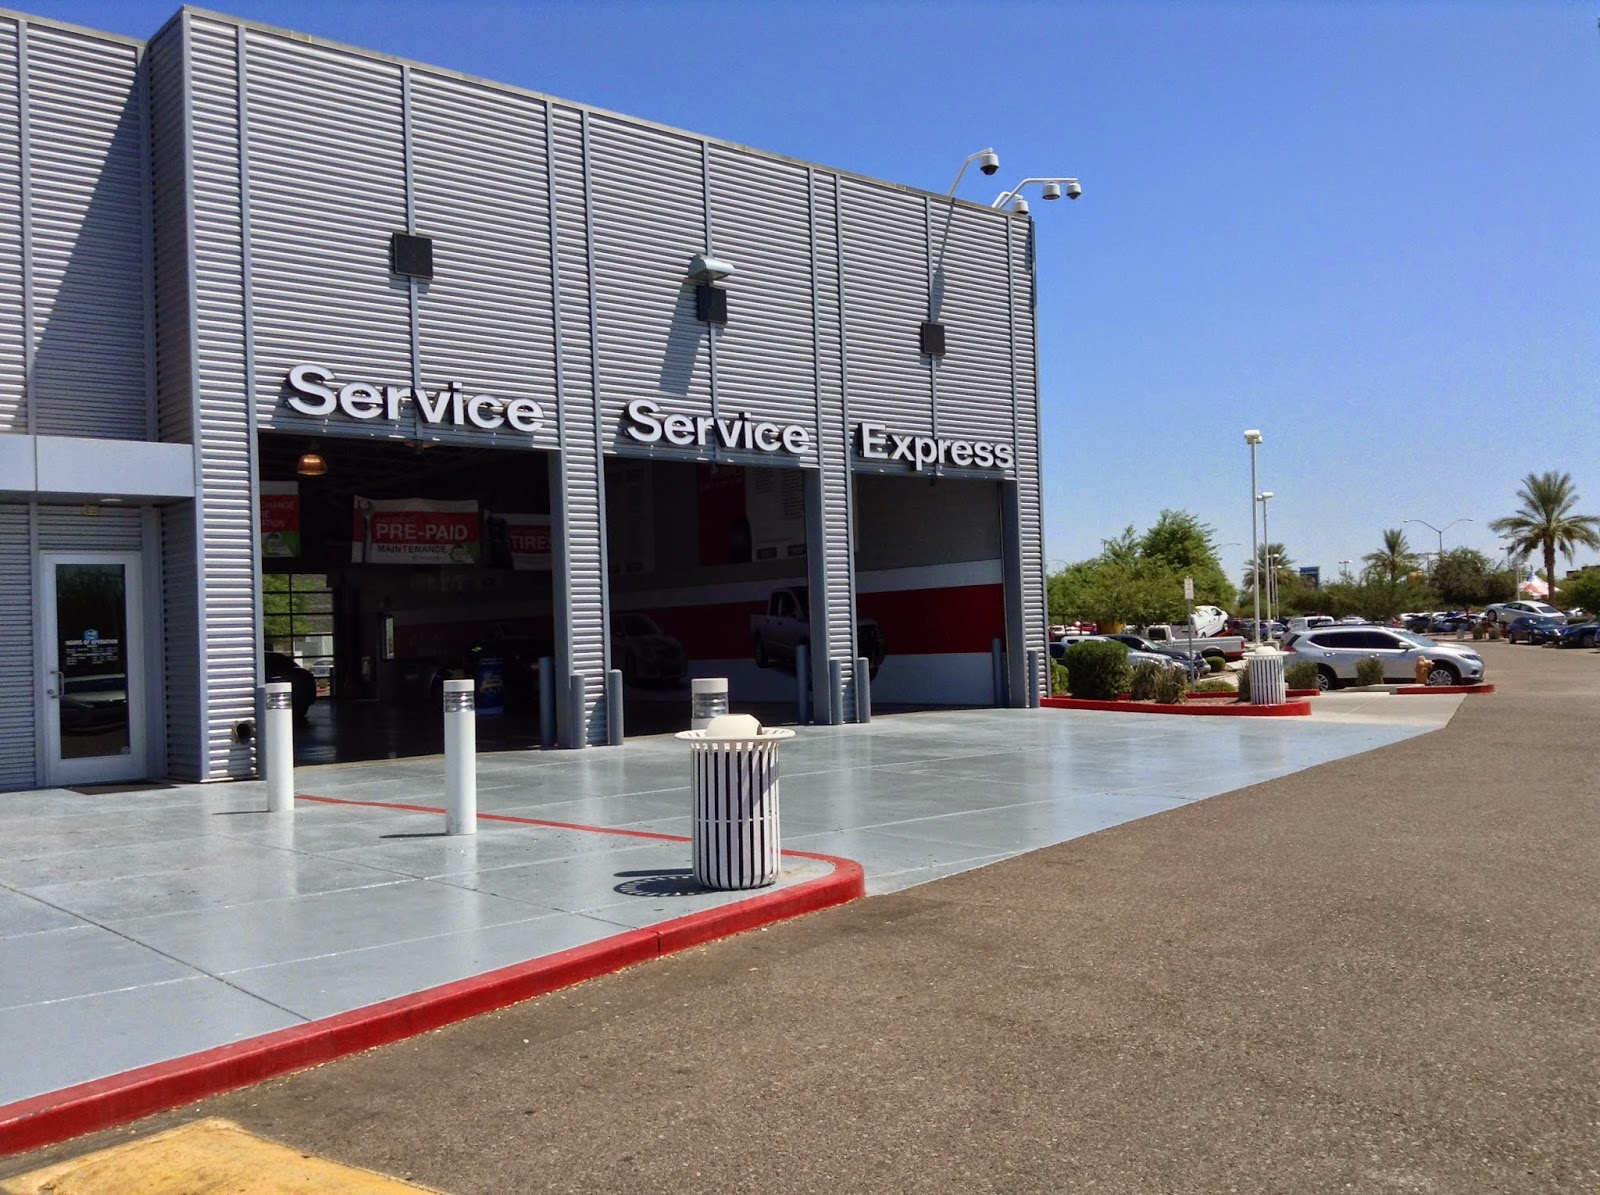 ... Larry H Miller Nissan Mesa Service Center. Our Nissan Repair Center  Does All Types Of Servicing From Oil Changes, State Inspections, Alignments  And All ...